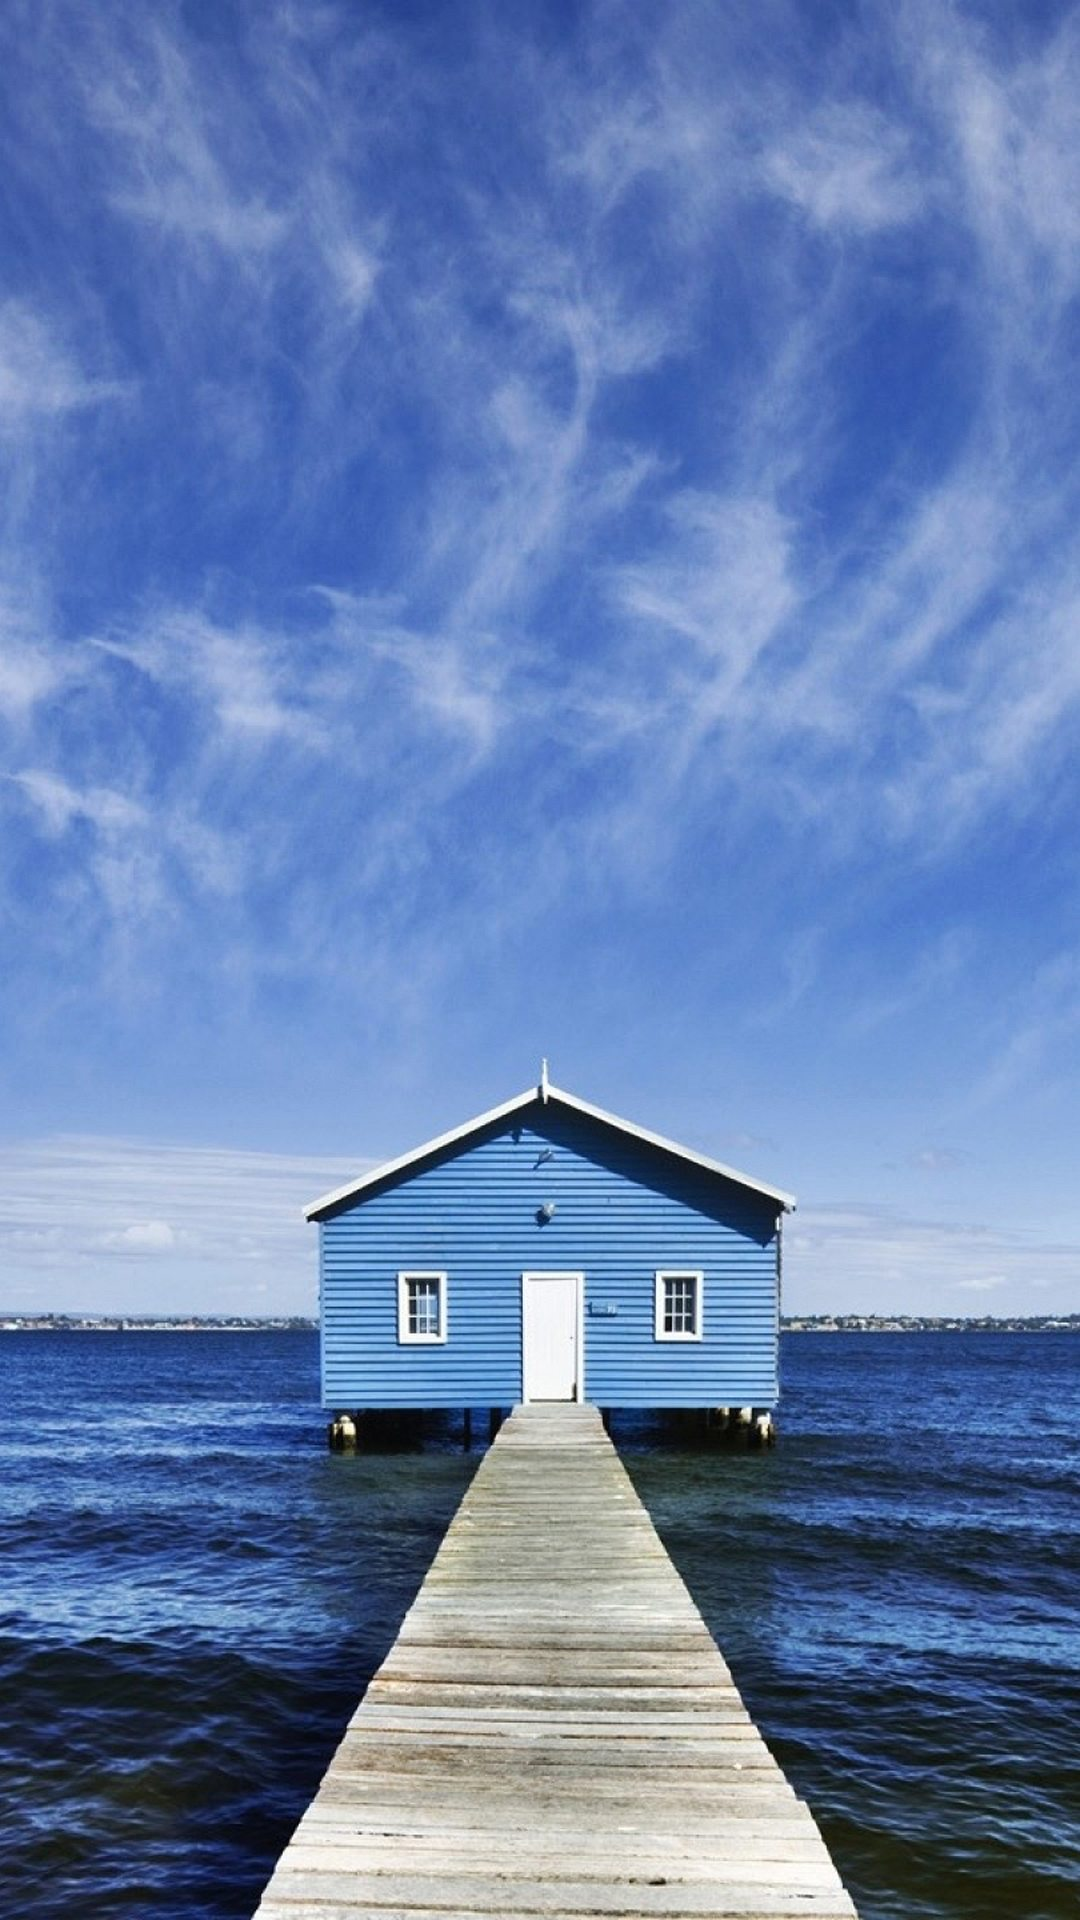 Blue house on sea best htc one wallpapers free and easy for Wallpaper for house wall